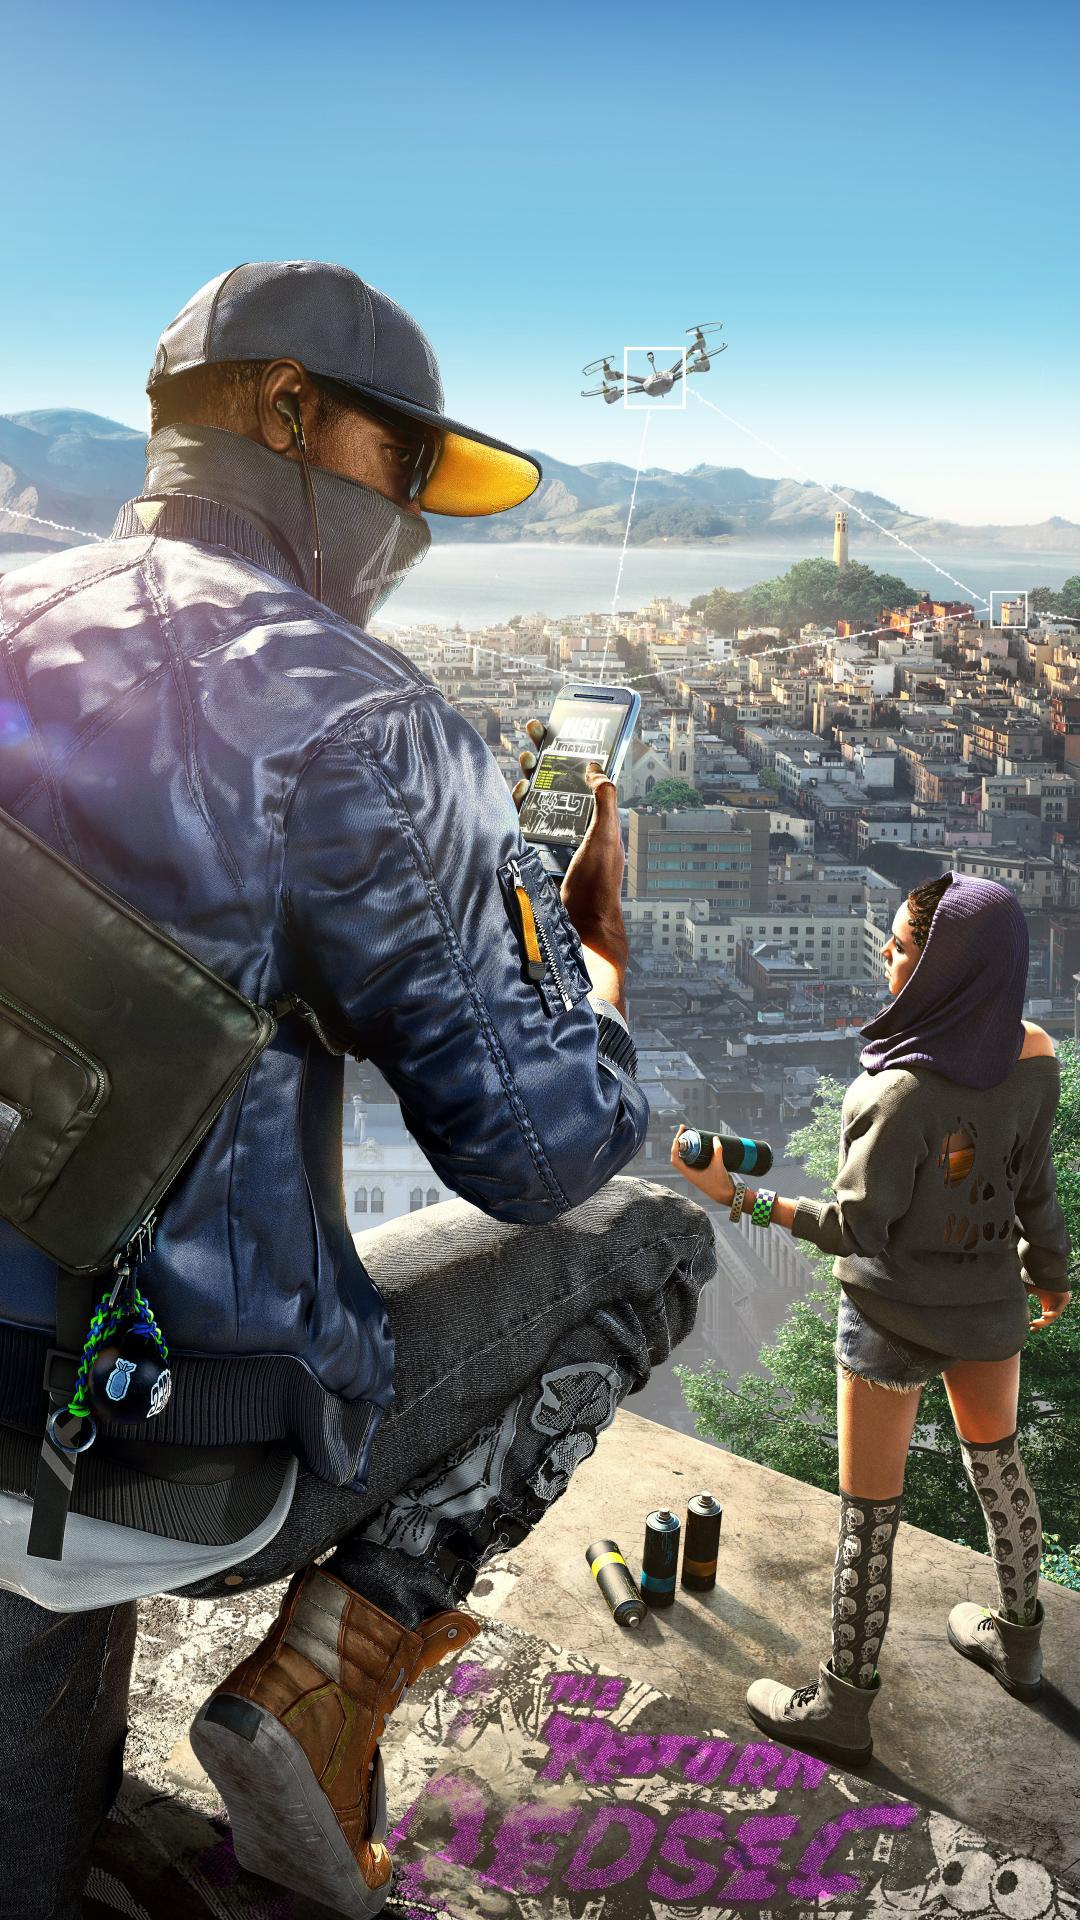 Watch Dogs 2 Hd Android Wallpapers Wallpaper Cave